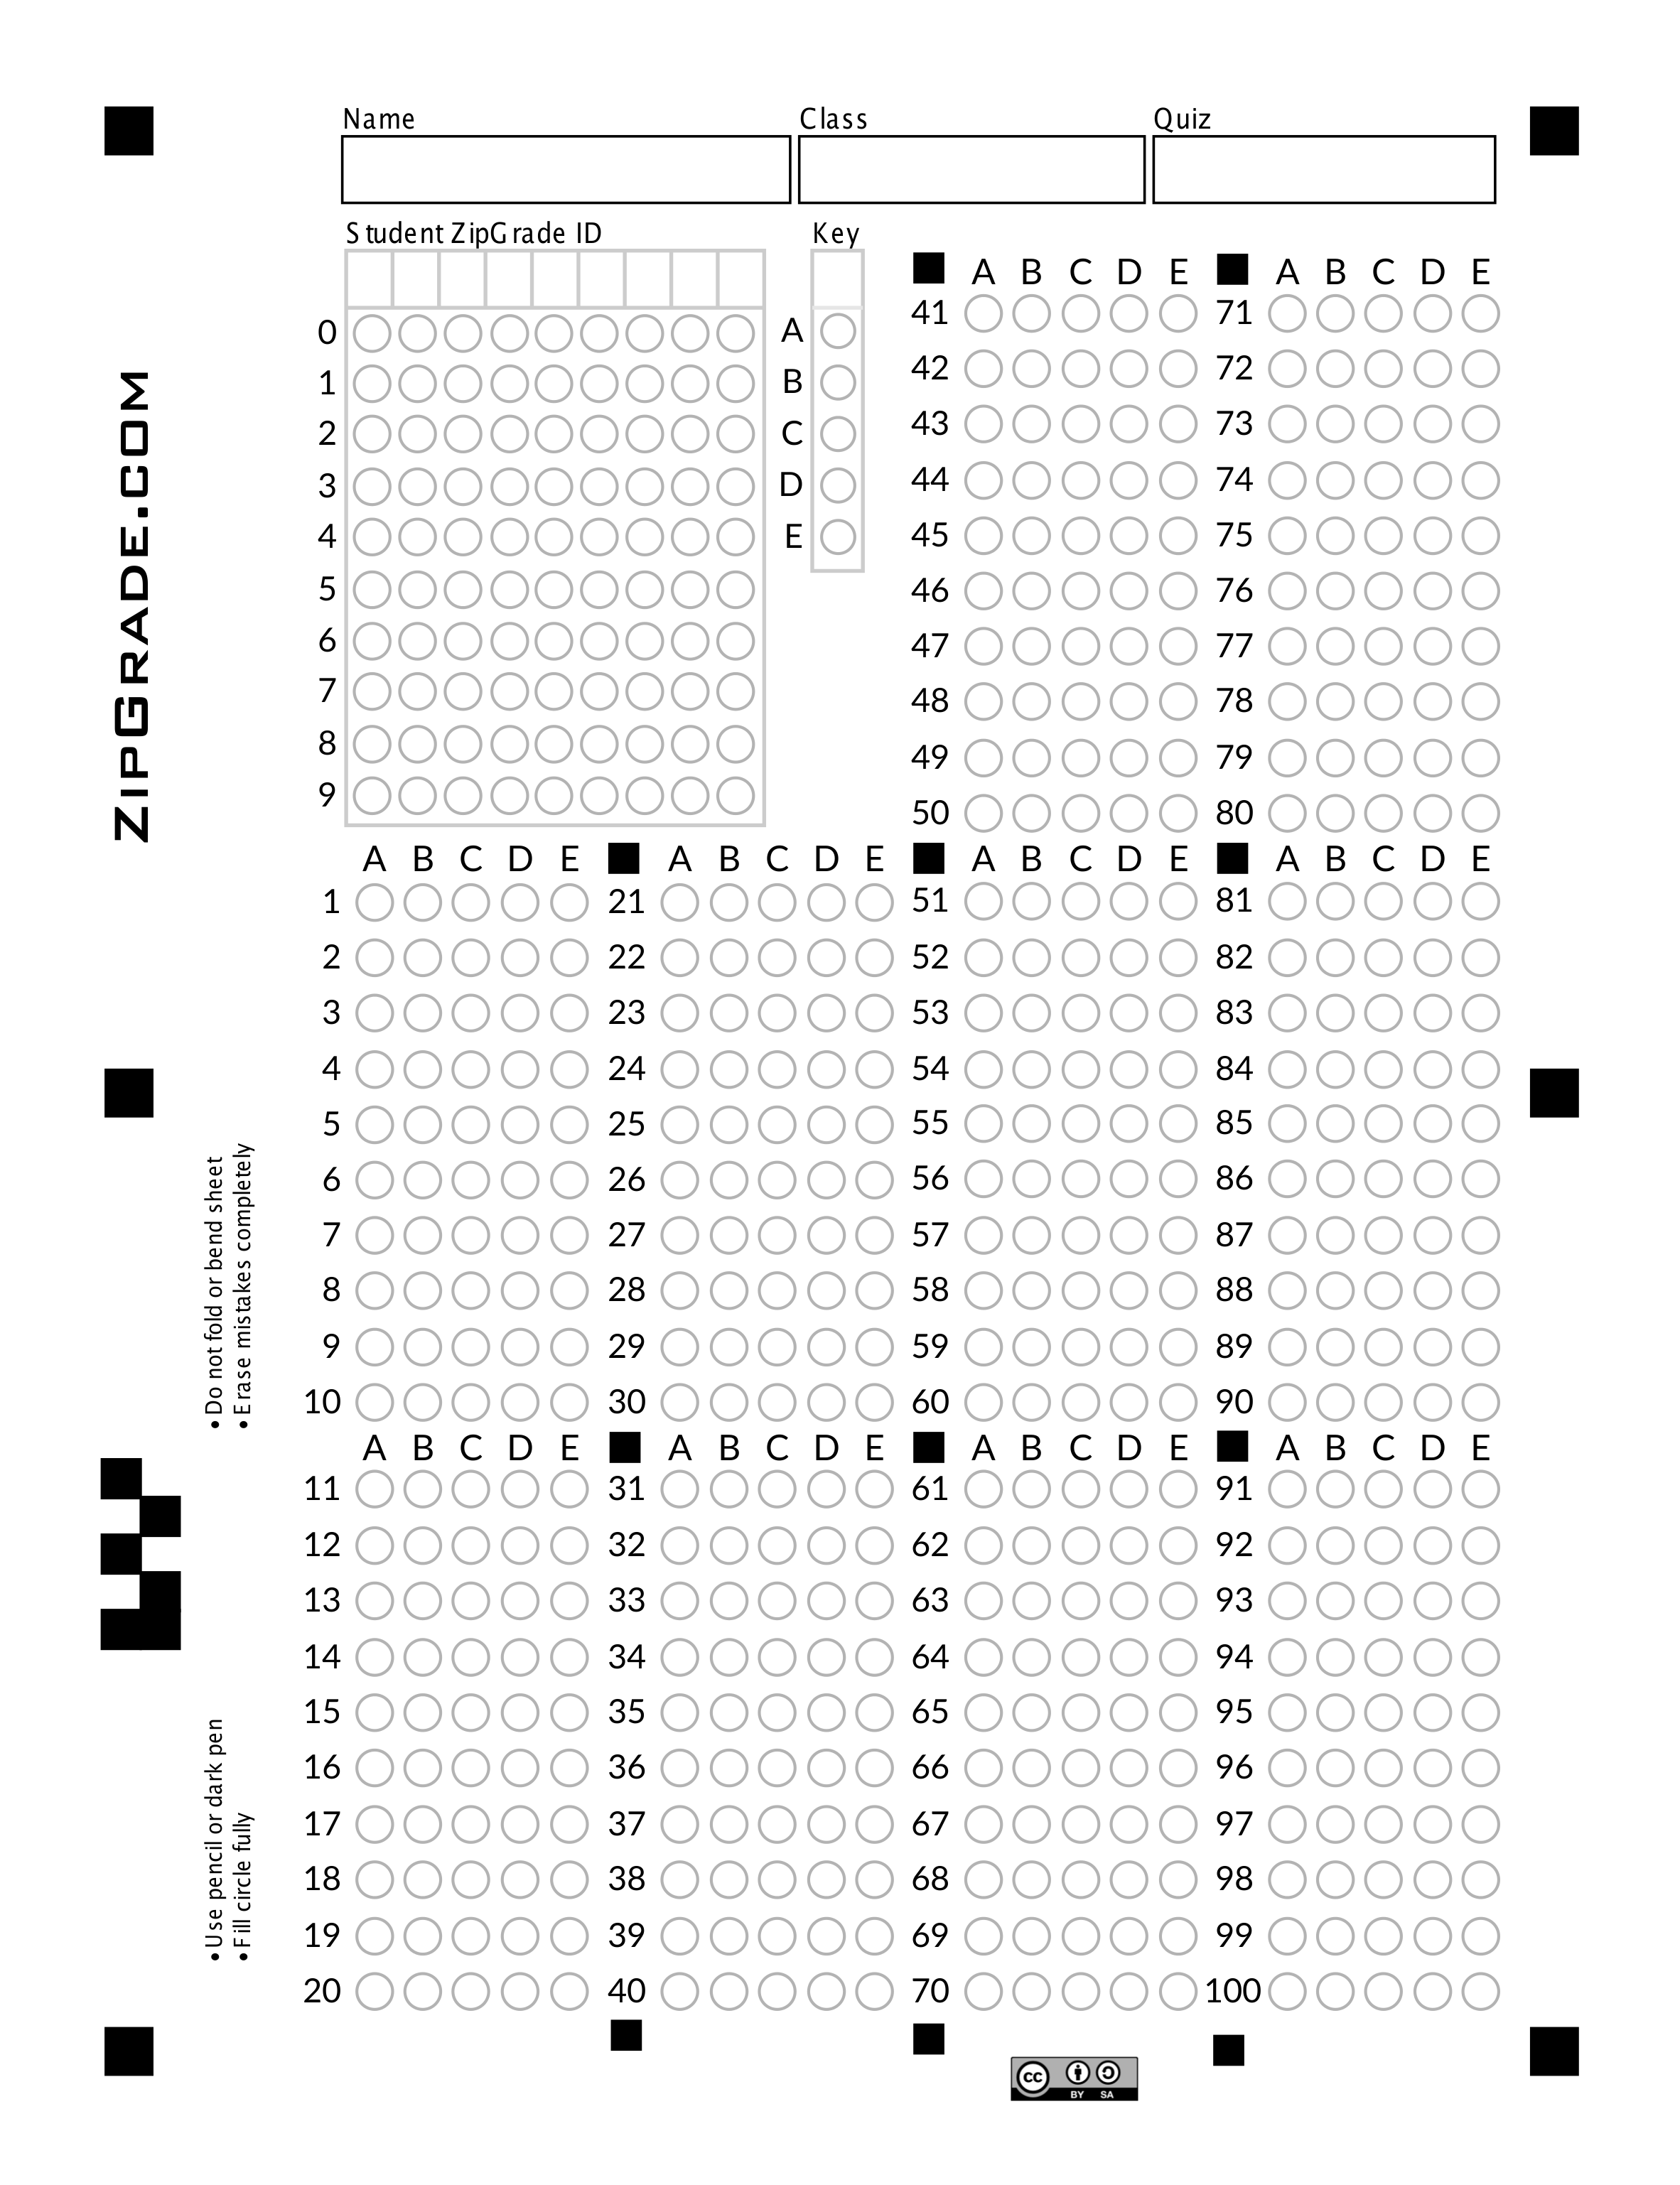 picture about Free Printable Scantron Bubble Sheet named ZipGrade: Option Sheet Kinds